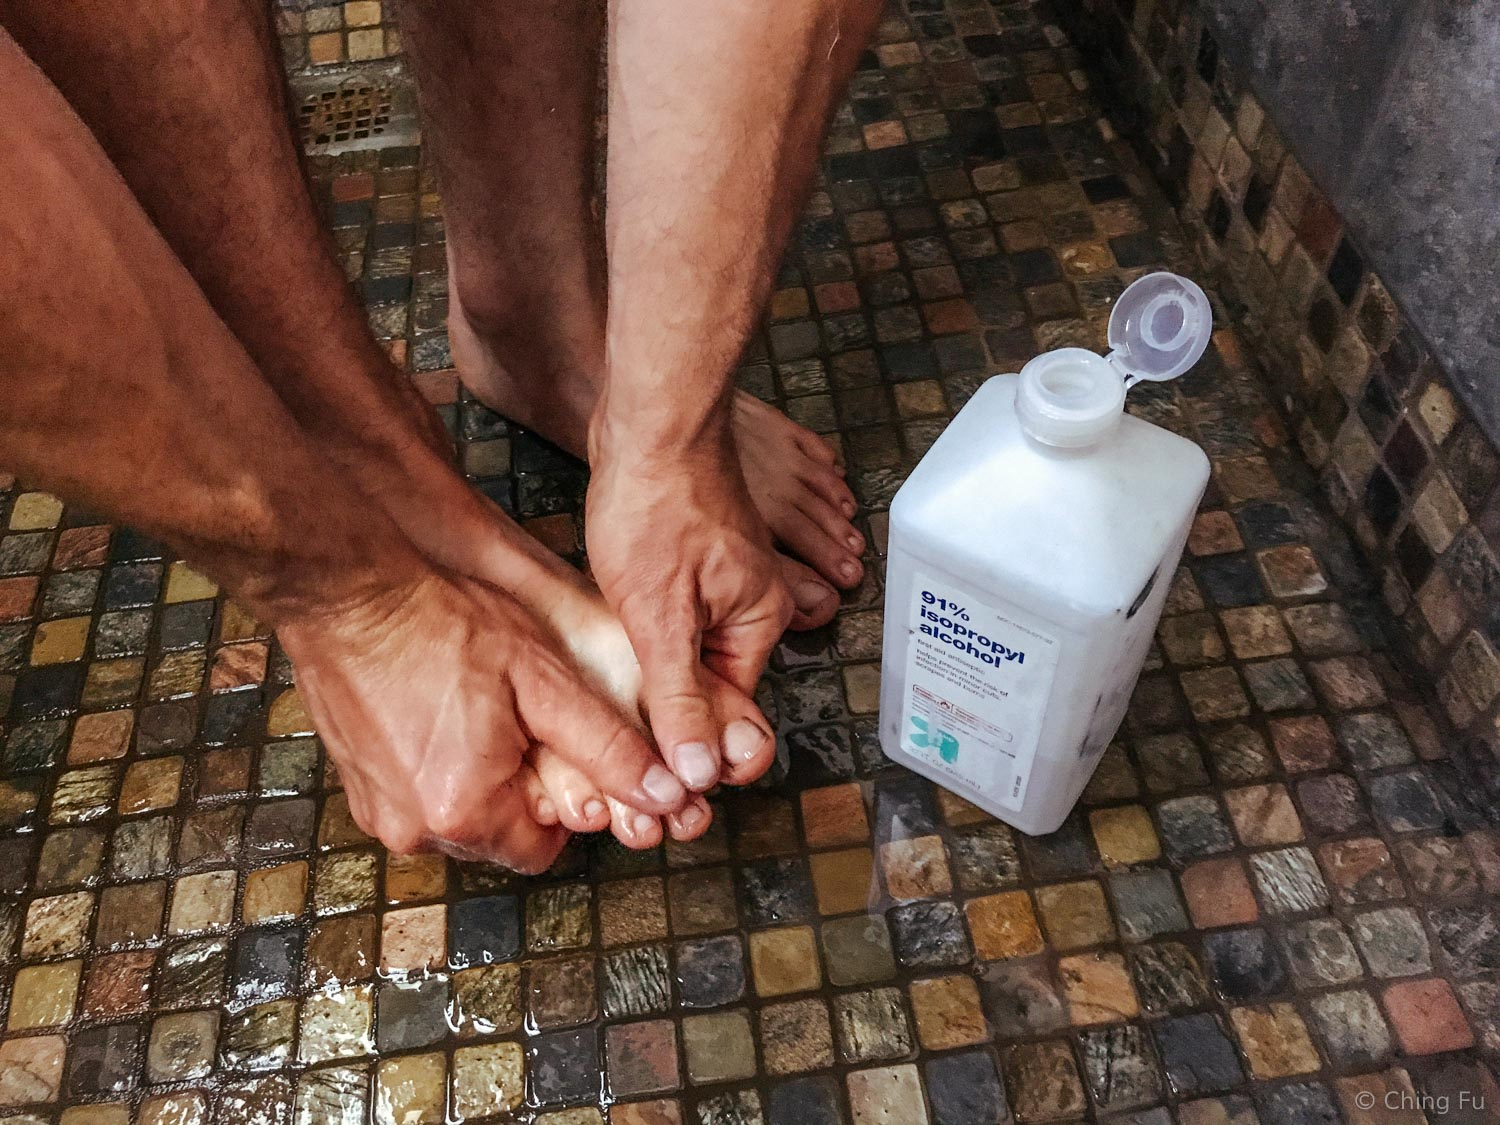 Cleaning our feet that's covered in epoxy with rubbing alcohol.